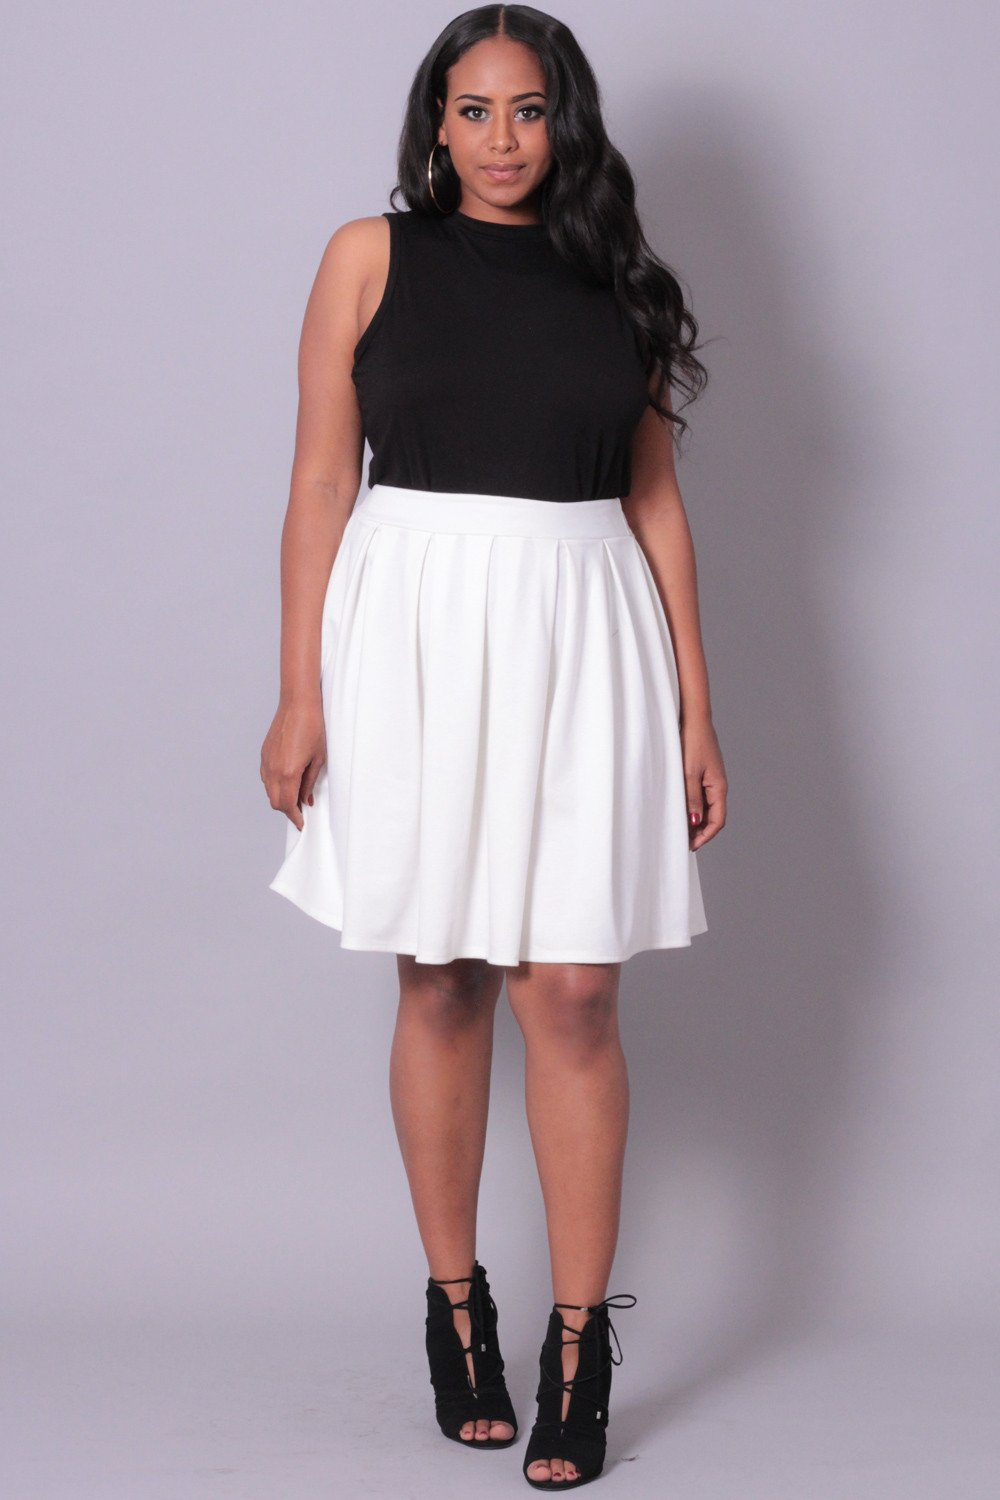 plus size skirts curvy sense | plus size clothing -plus_size_womens- plus size pleated skirt  - nmqverw